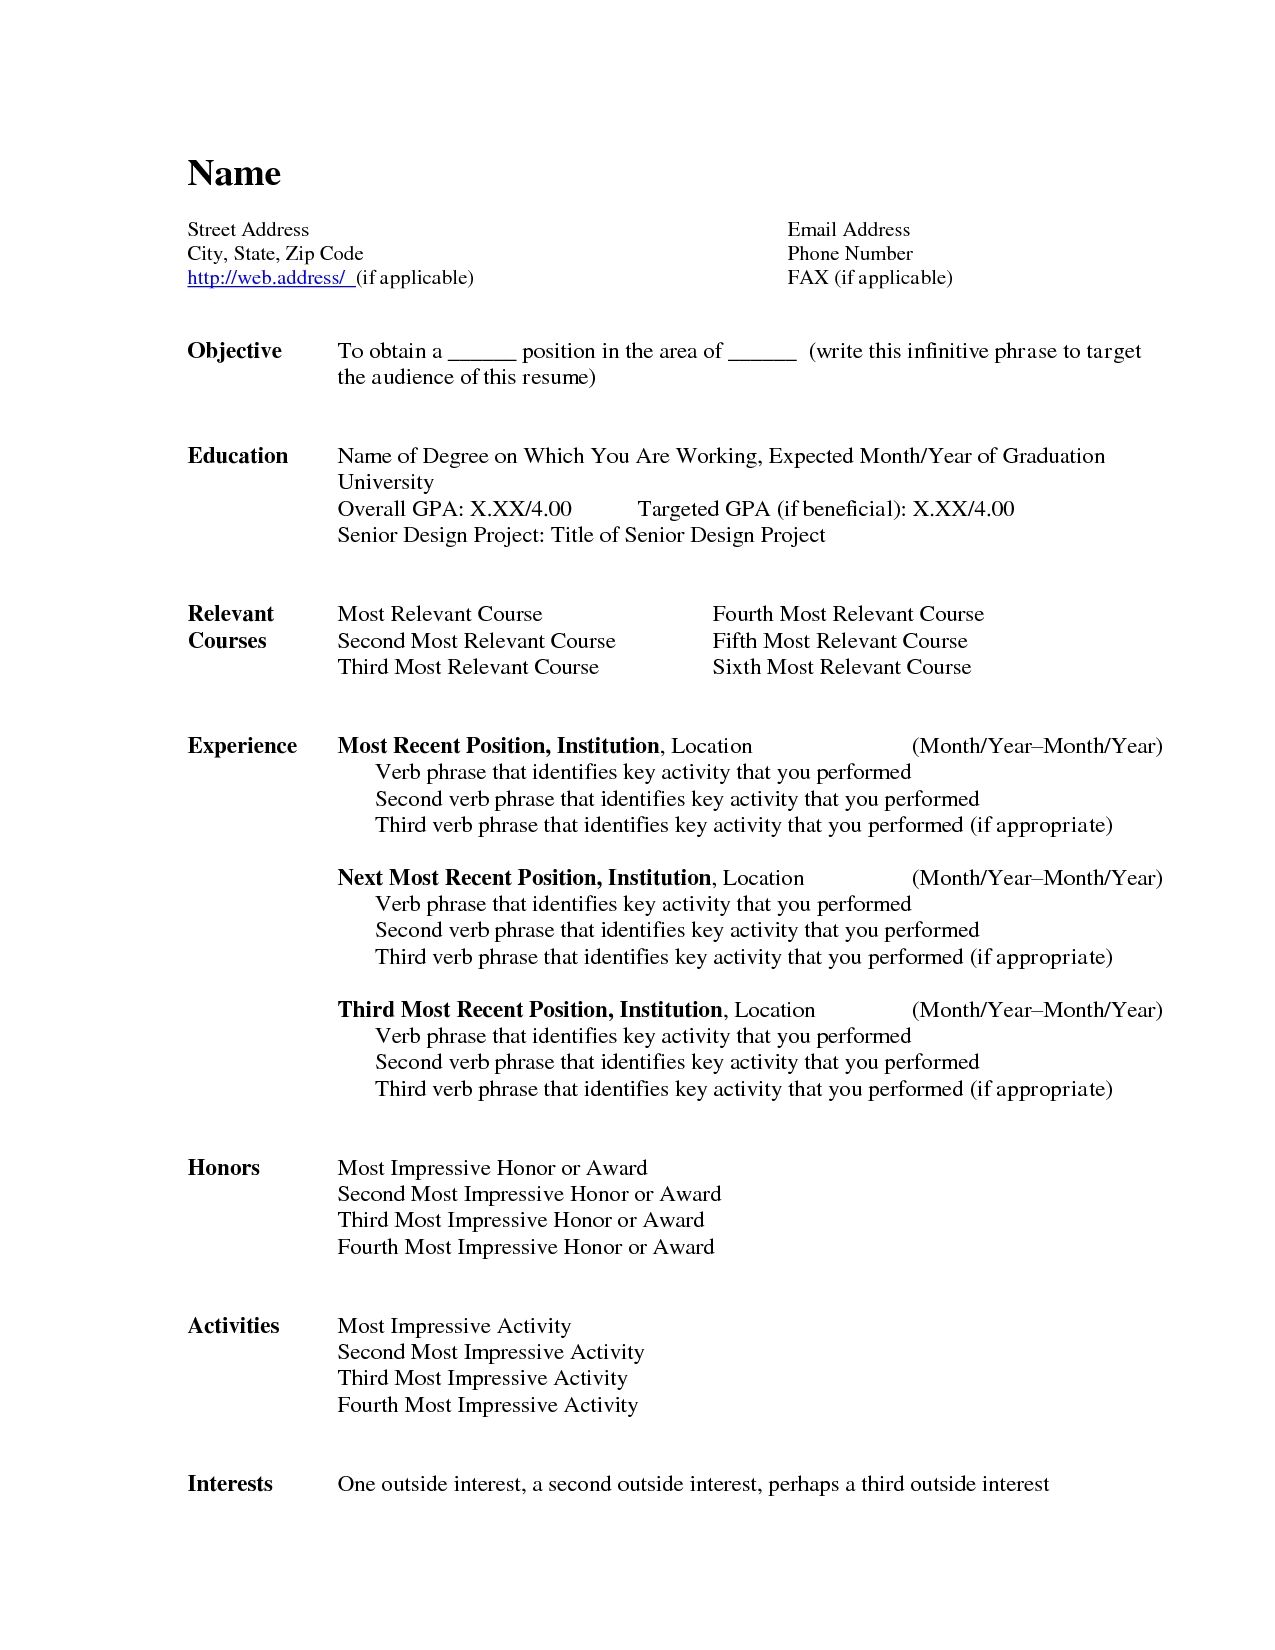 Photo Ms Word Resume Format Images The